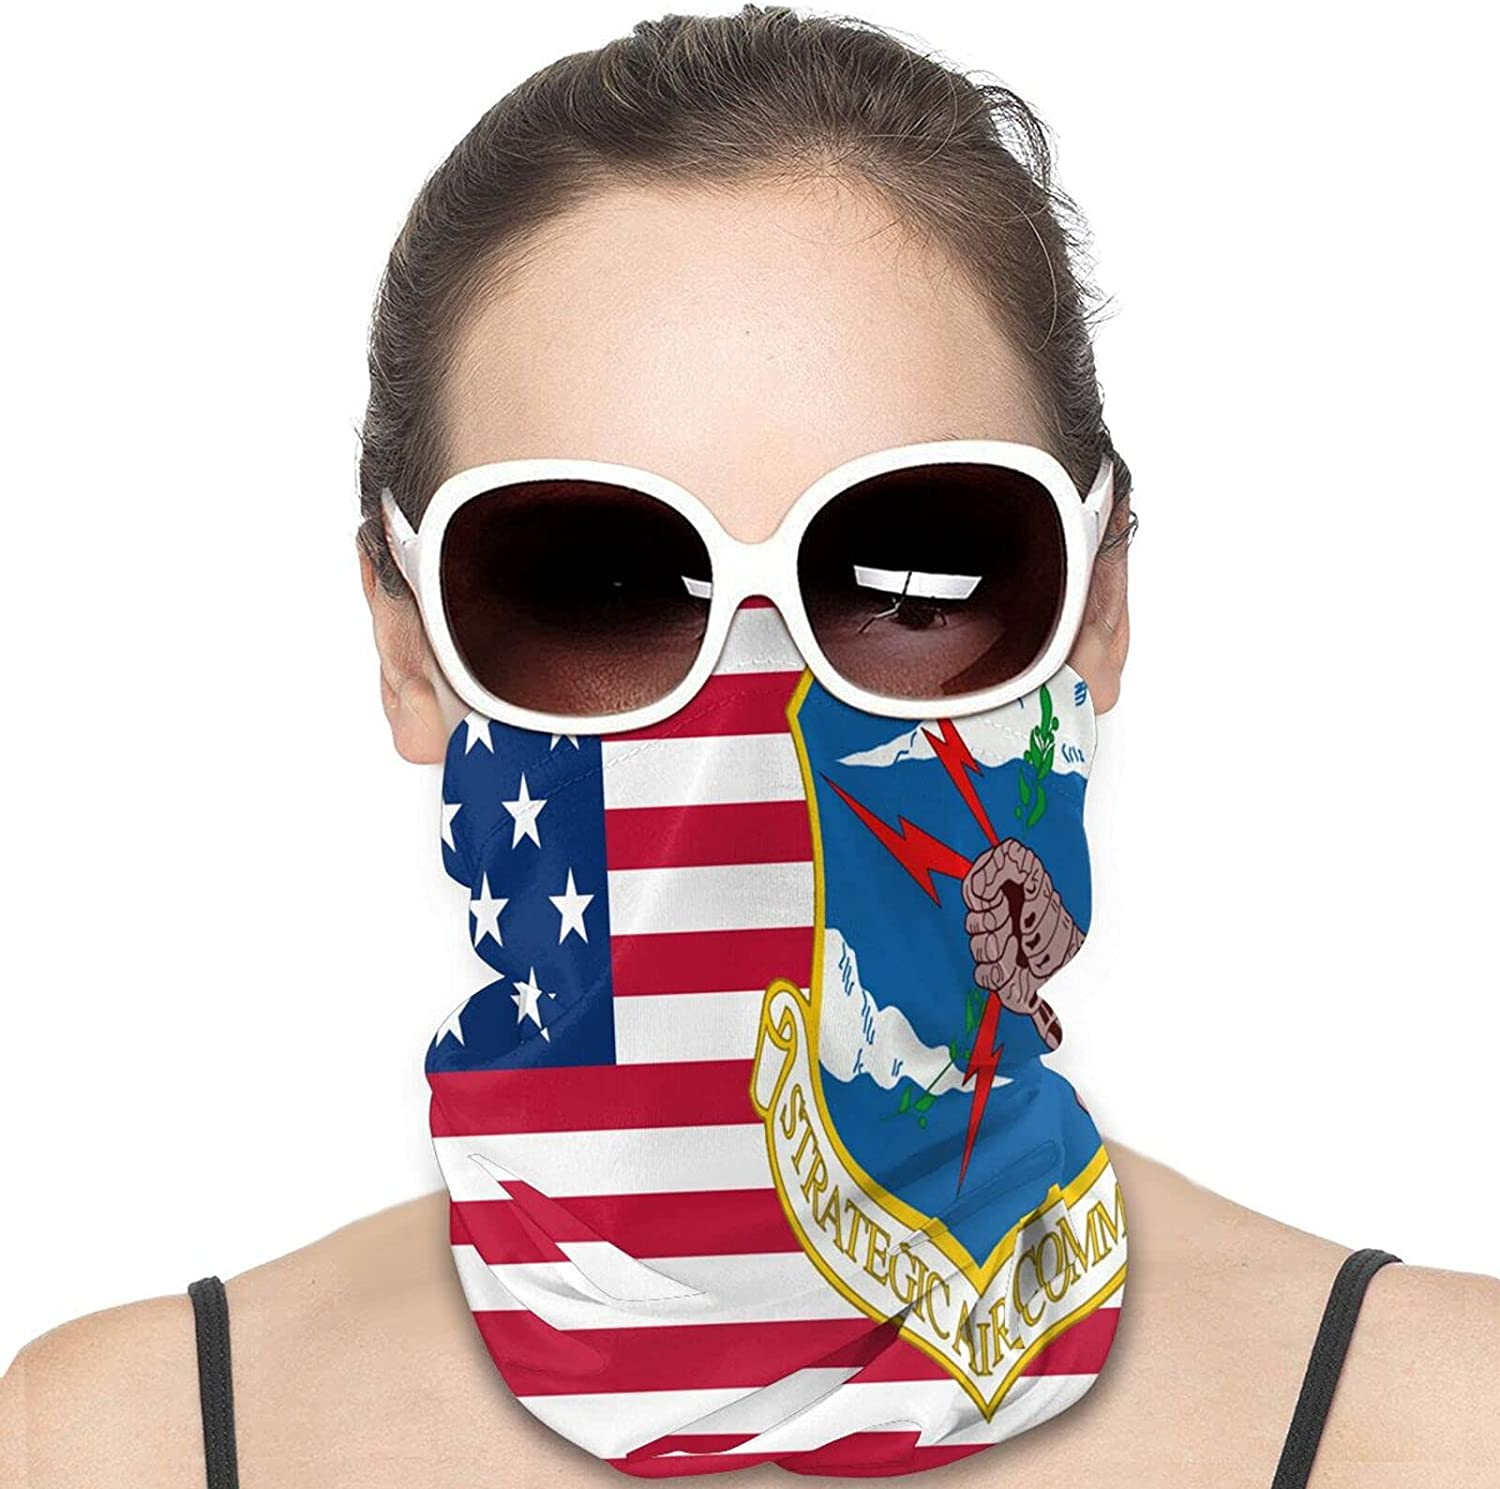 Blytheville Air Force Base Round Neck Gaiter Bandnas Face Cover Uv Protection Prevent bask in Ice Scarf Headbands Perfect for Motorcycle Cycling Running Festival Raves Outdoors